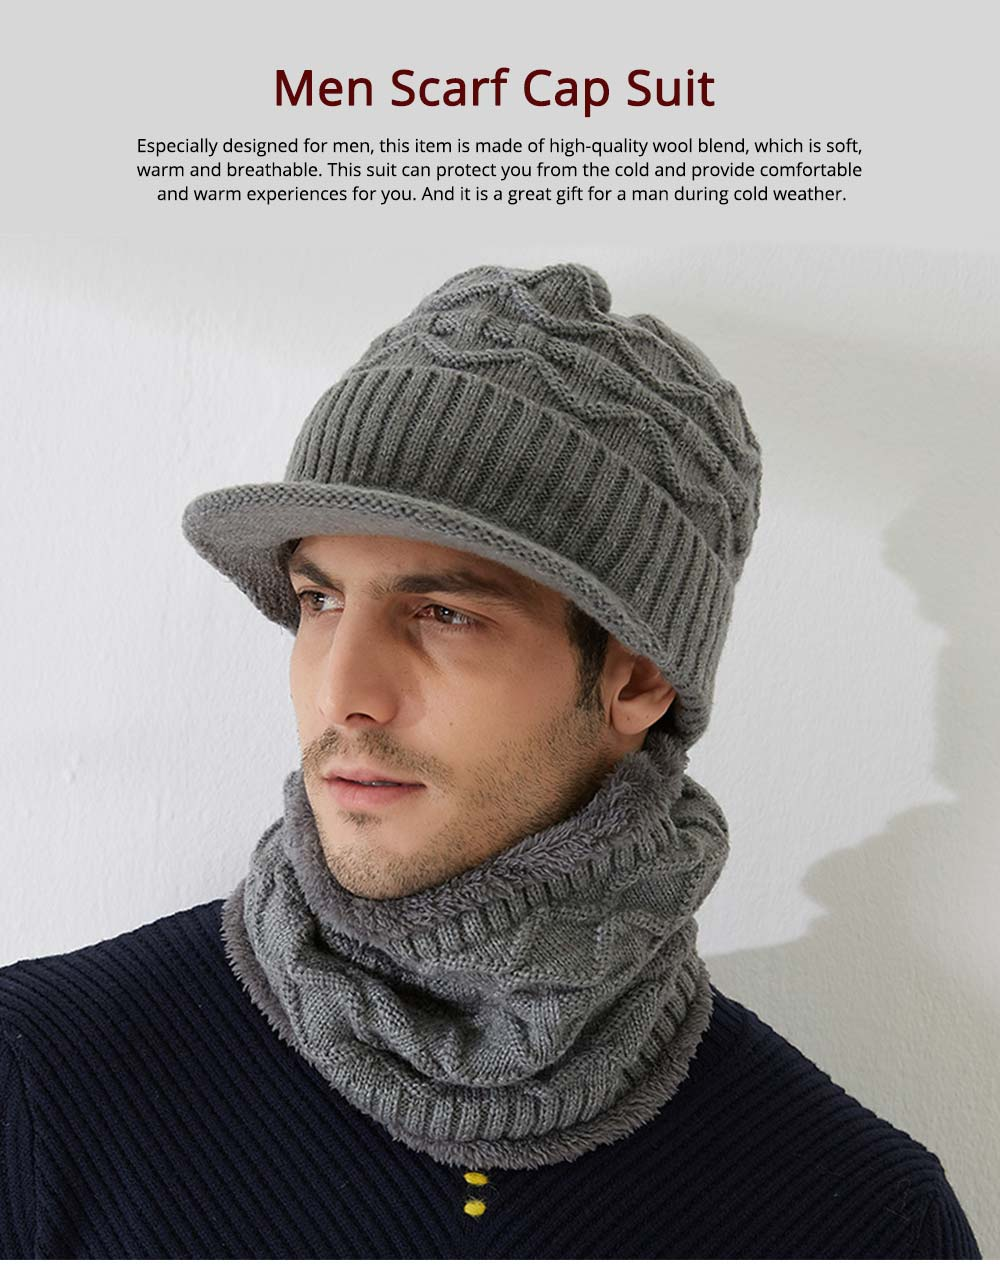 Cold Autumn Winter Men Outdoor Scarf Cap Suit, Comfortable Soft Wool Blend Knitted Face Neck Warmer Cravat 0